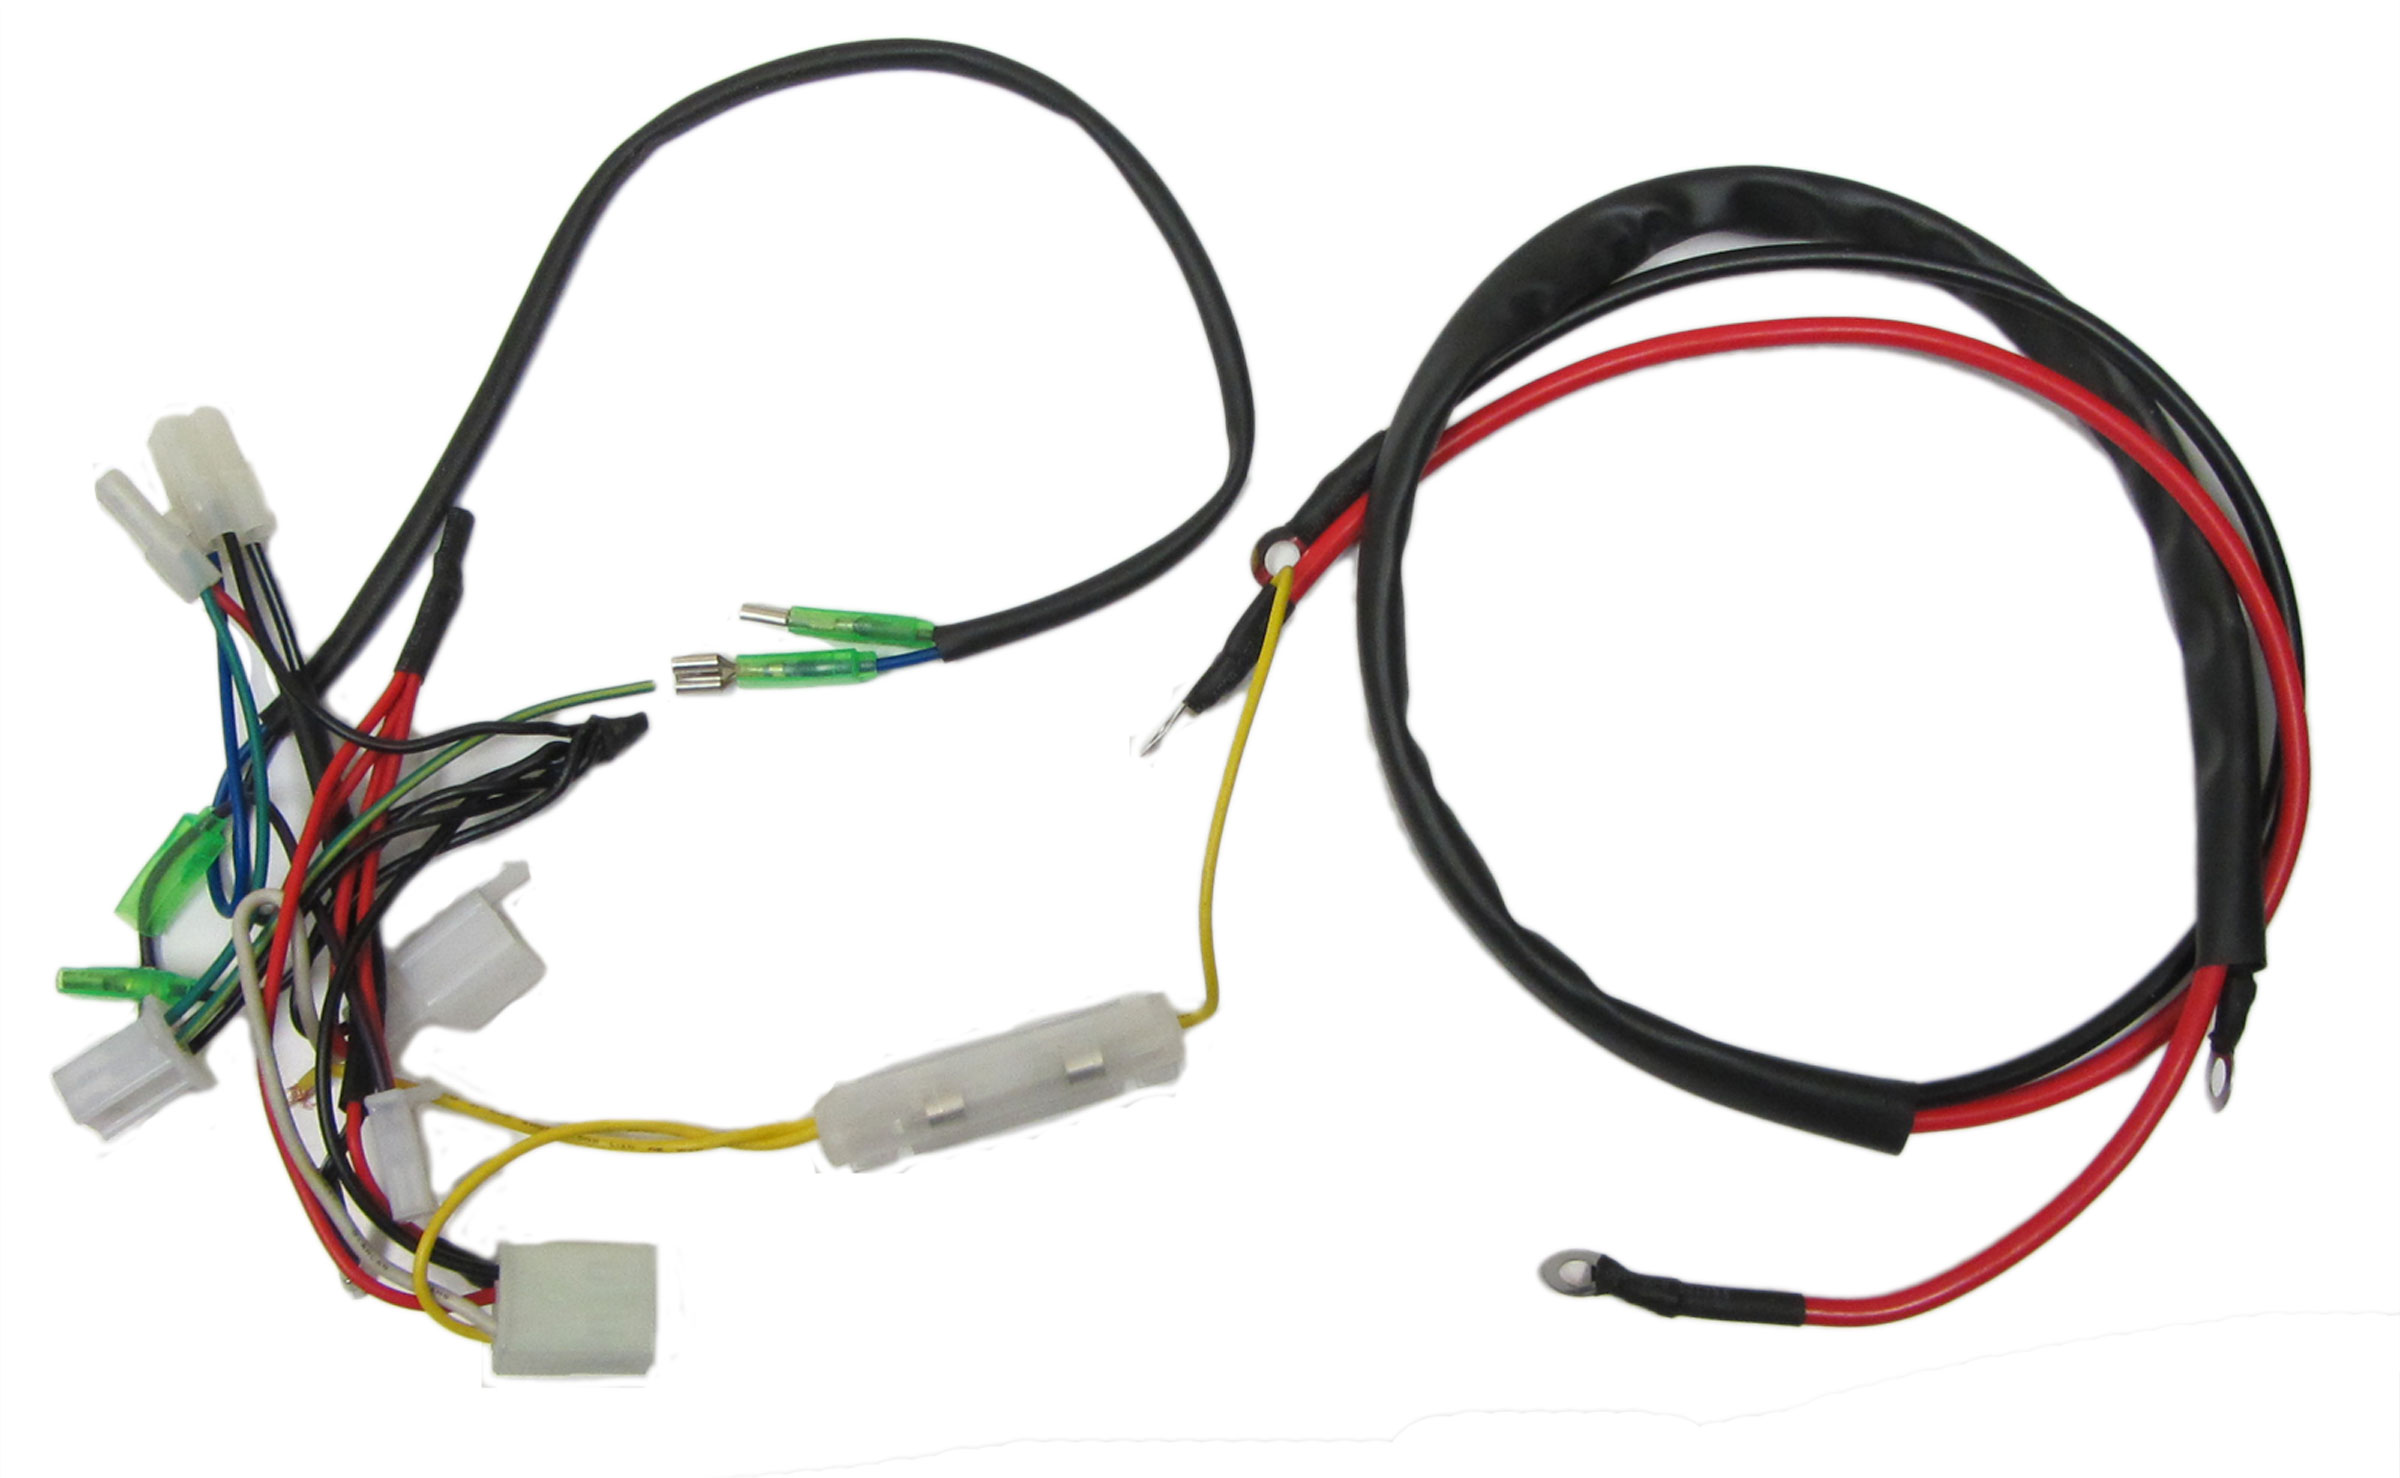 engine wiring harness for gy6 150cc engine 05711a bmi karts engine wiring harness for gy6 150cc engine 05711a bmi karts and motorocycle parts